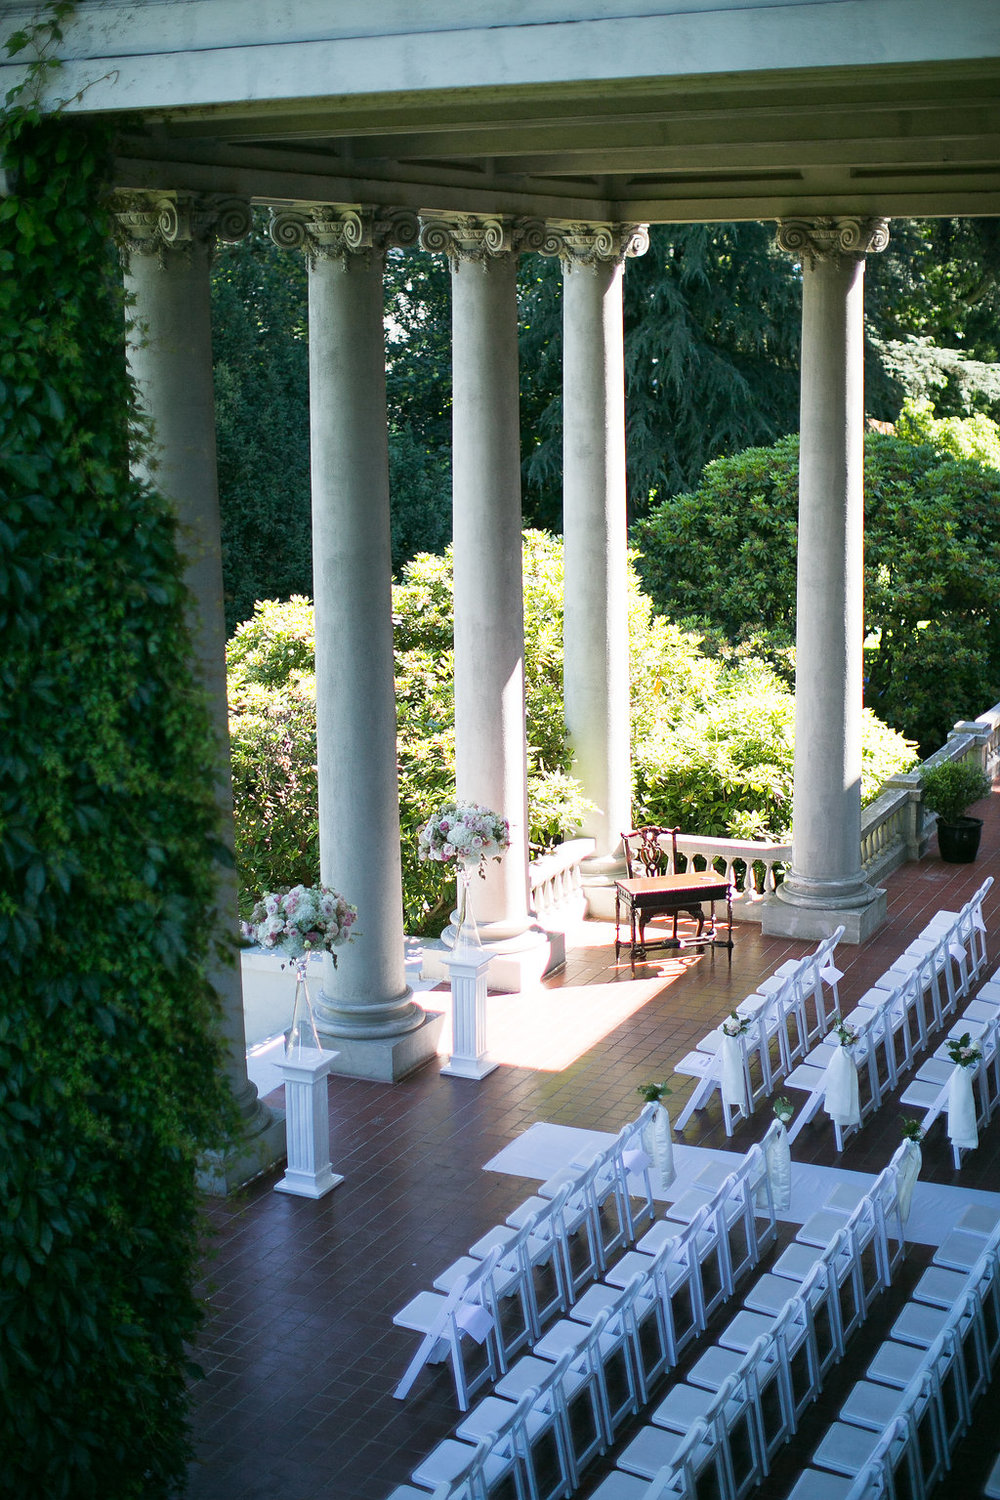 Hycroft-wedding-ceremony-setup-aerial-view